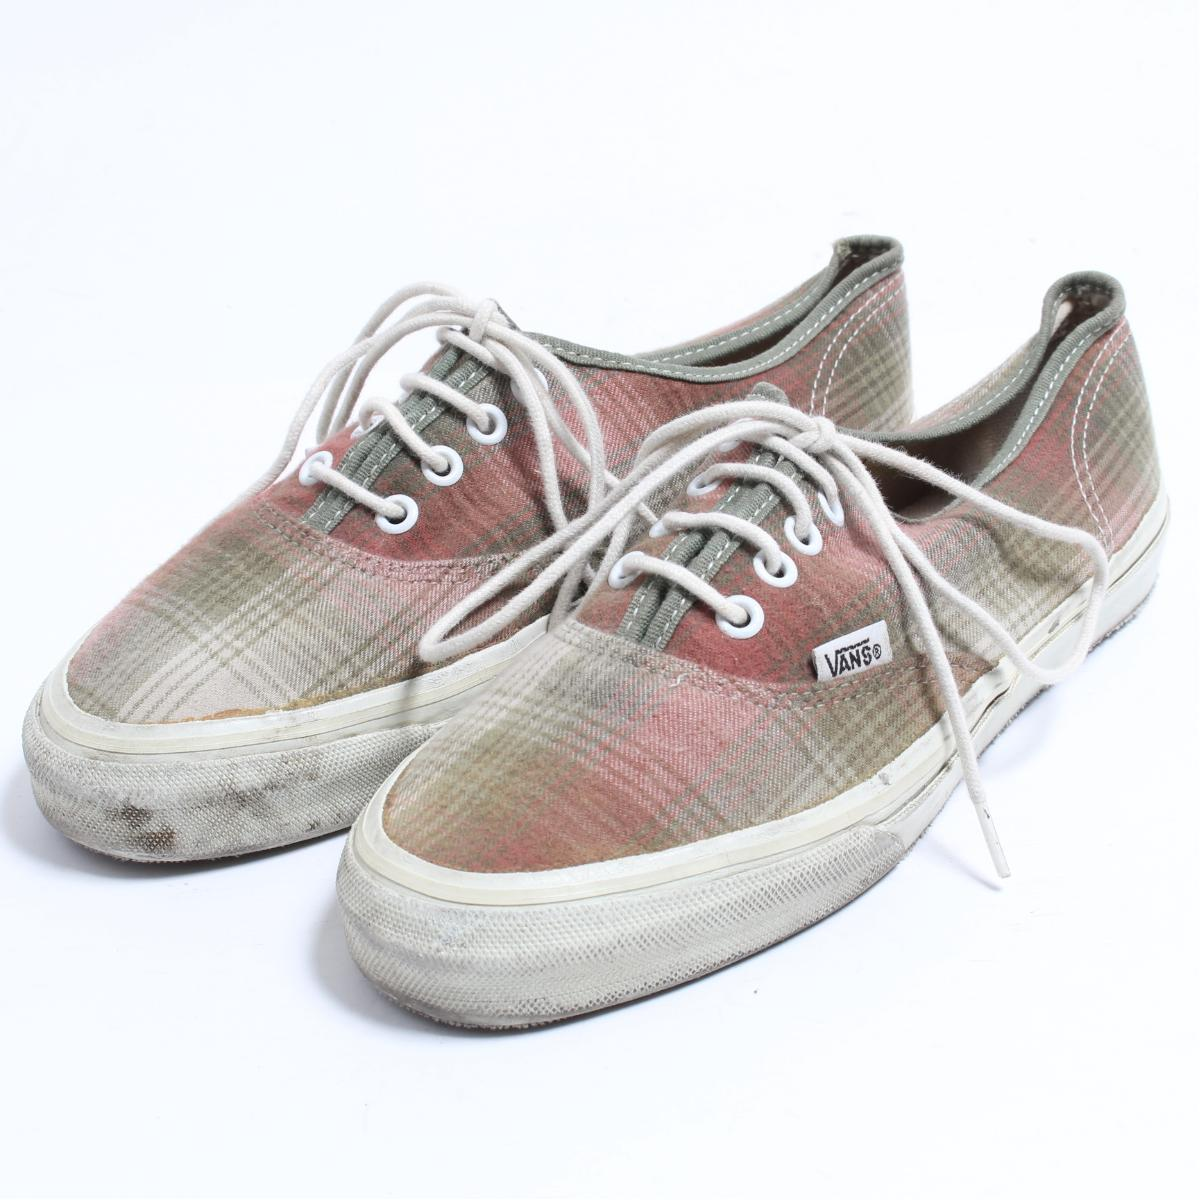 df76ffdc344 Product made in 90s vans VANS AUTHENTIC authentic sneakers USA 9 men s  25.5cm  boo2906